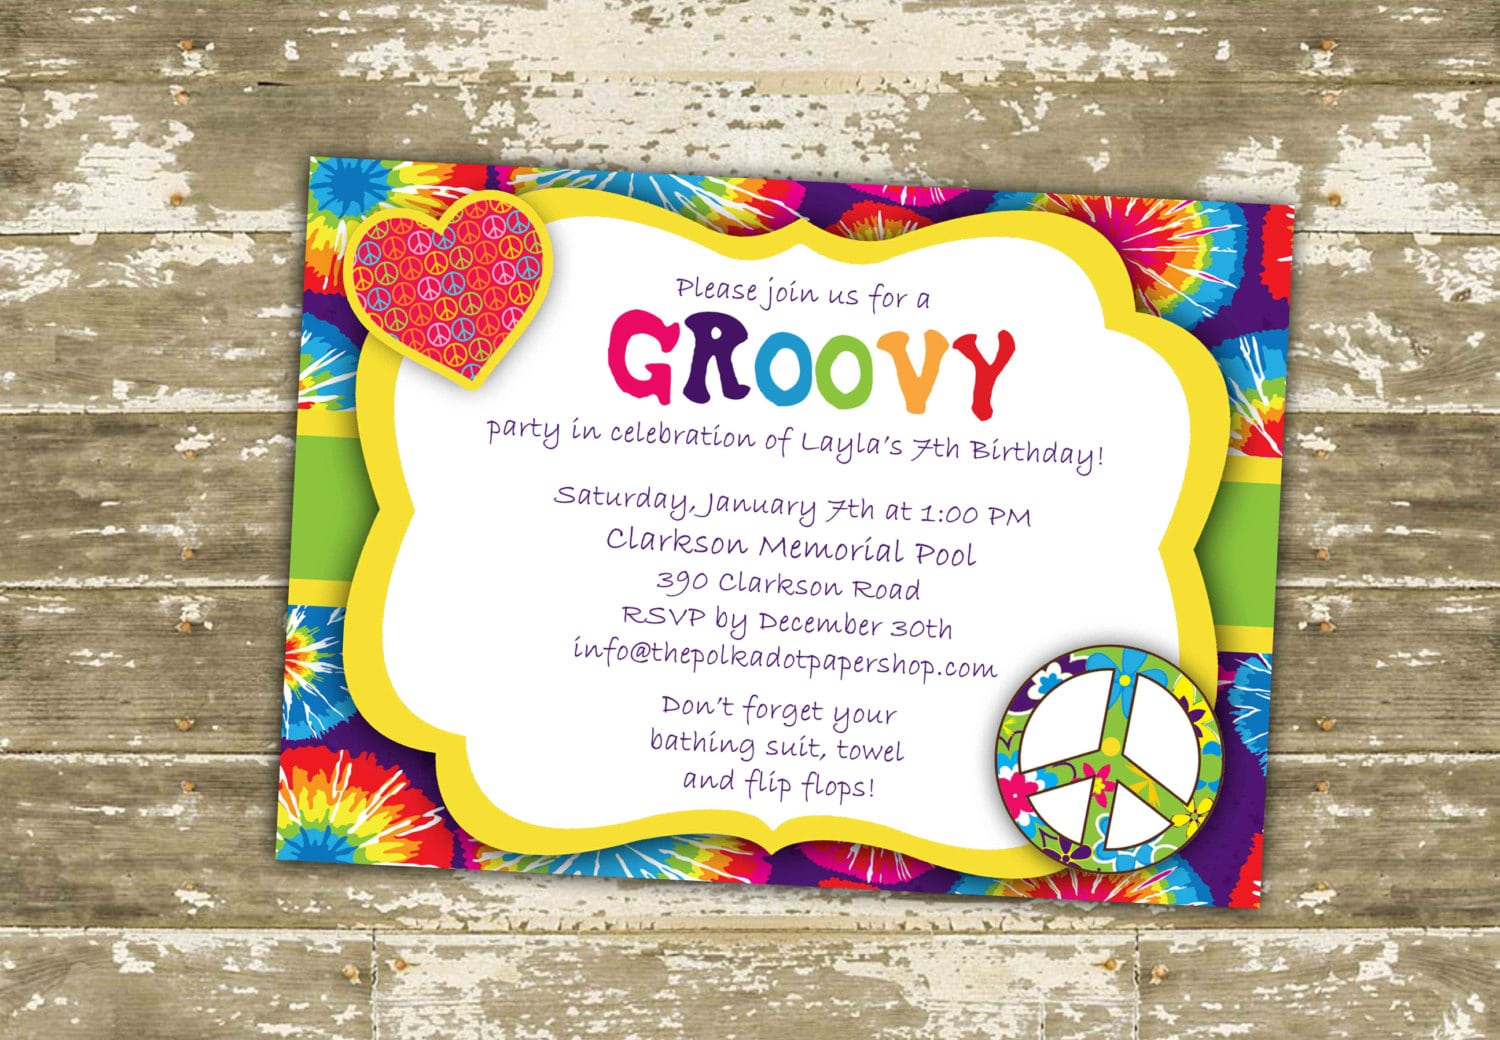 Hippie Invitation   Invite   Hippie Birthday Party   Groovy